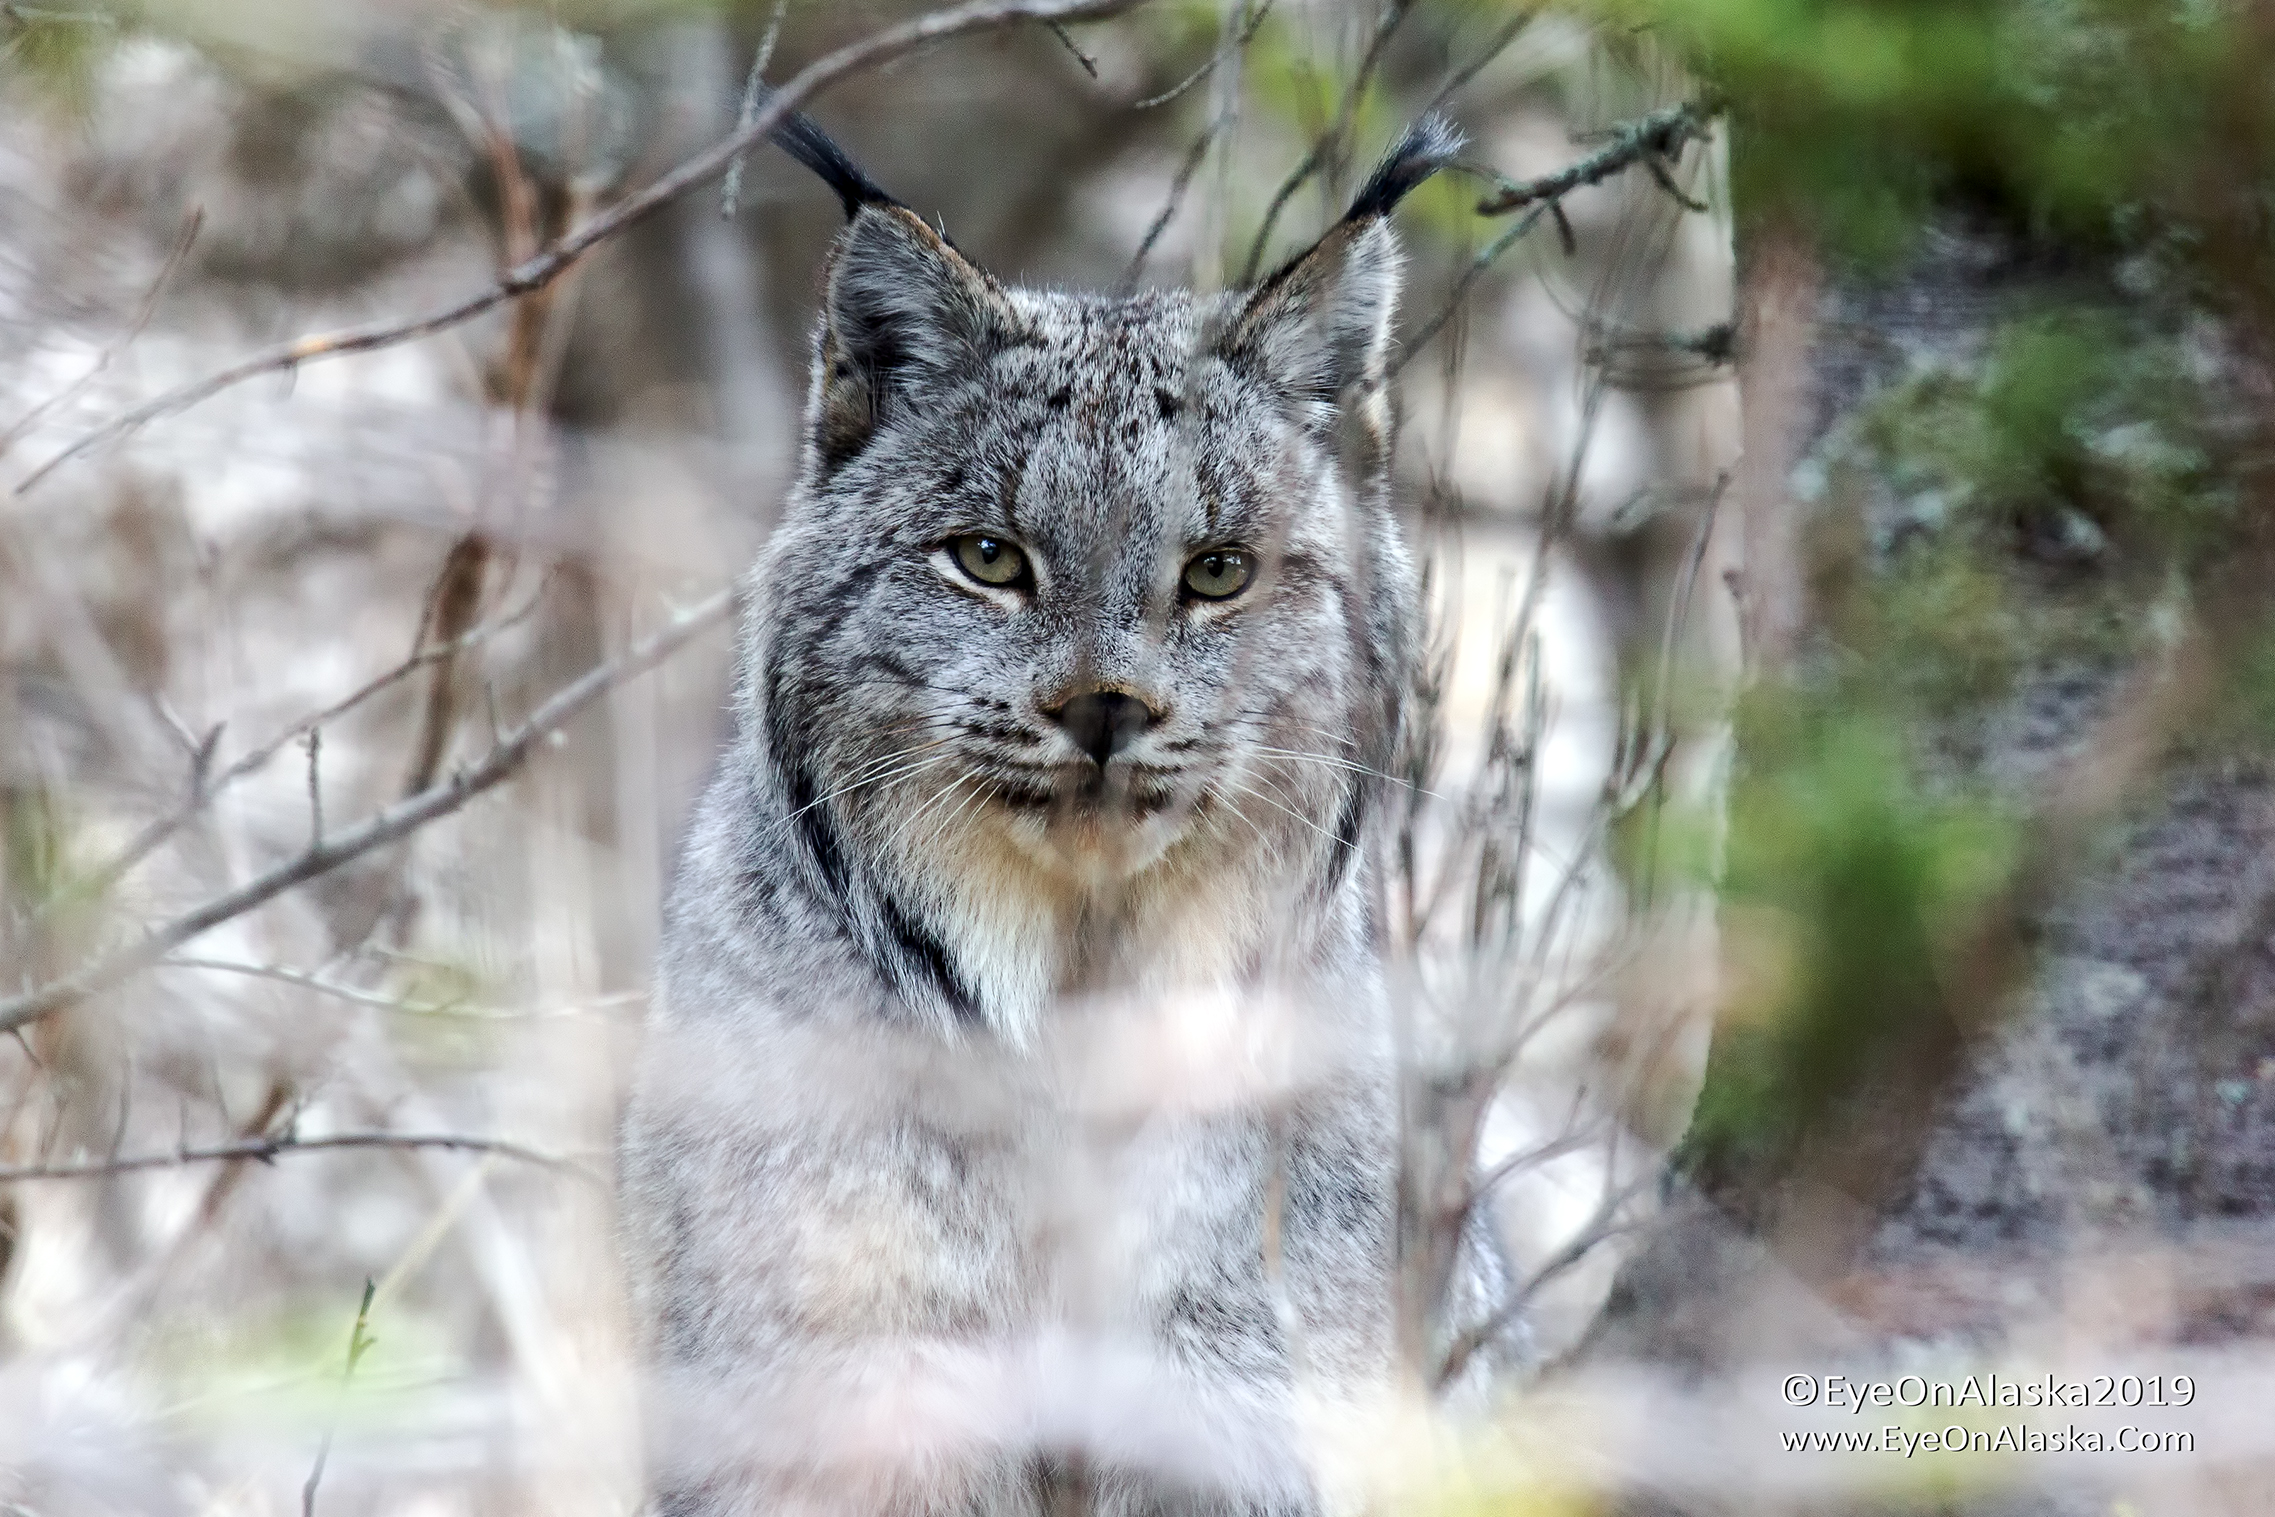 The Lynx let me move down to the driveway and circle it getting different angles. 15'-20' away at times. You can really see the ear-tufts from here.  It was wonderful.